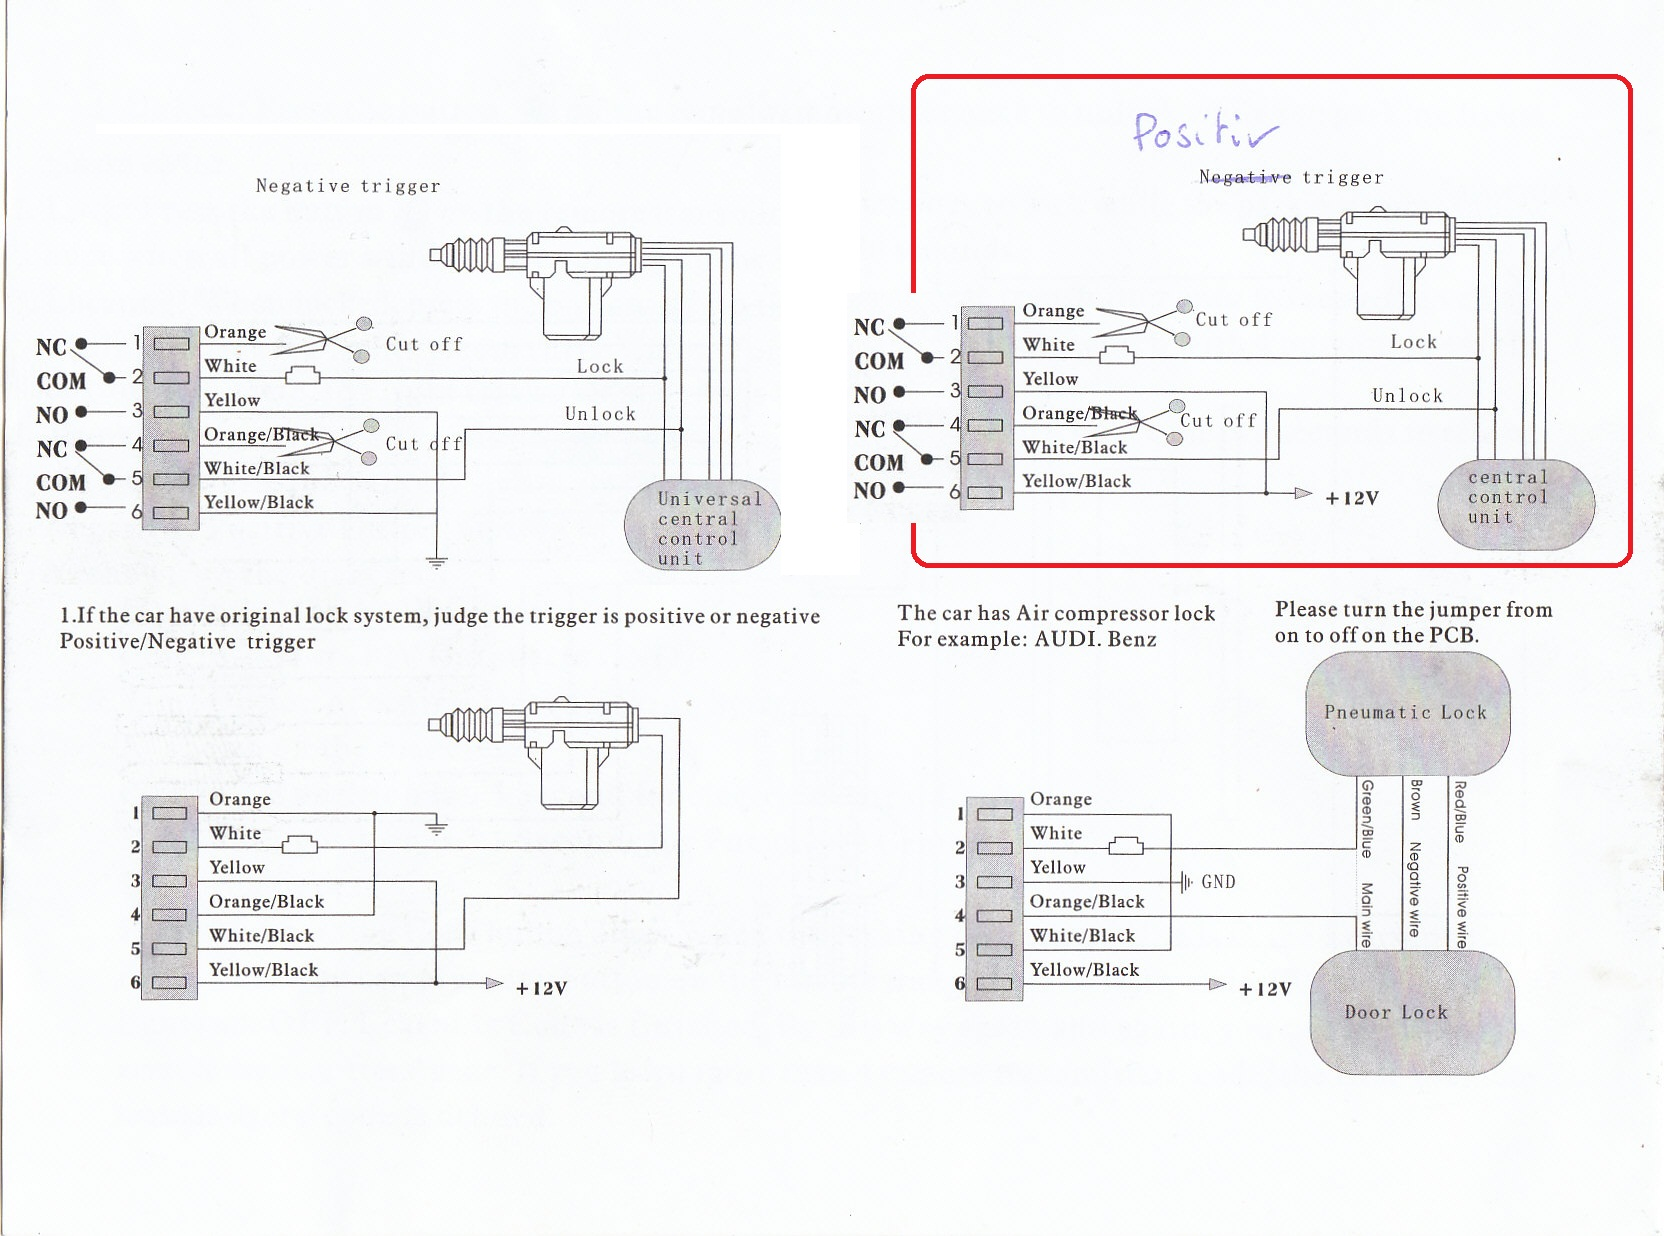 Prestige Remote Car Starter Diagram